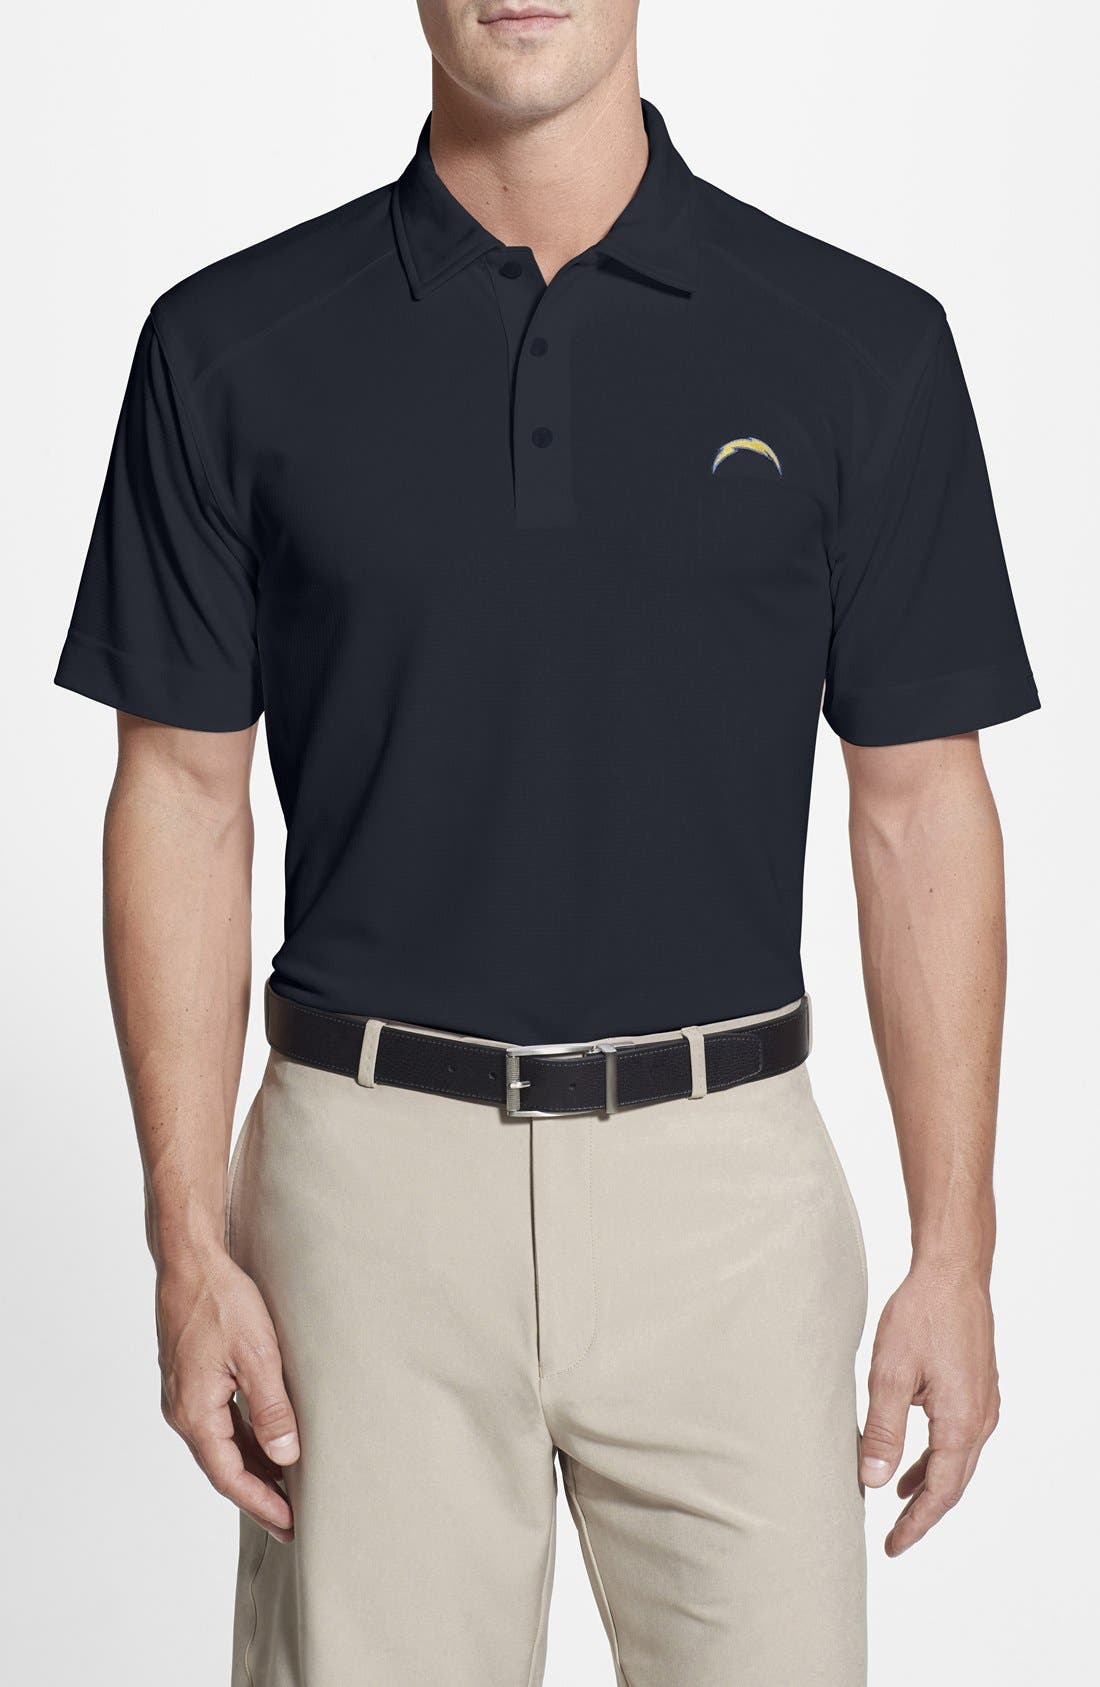 Main Image - Cutter & Buck San Diego Chargers - Genre DryTec Moisture Wicking Polo